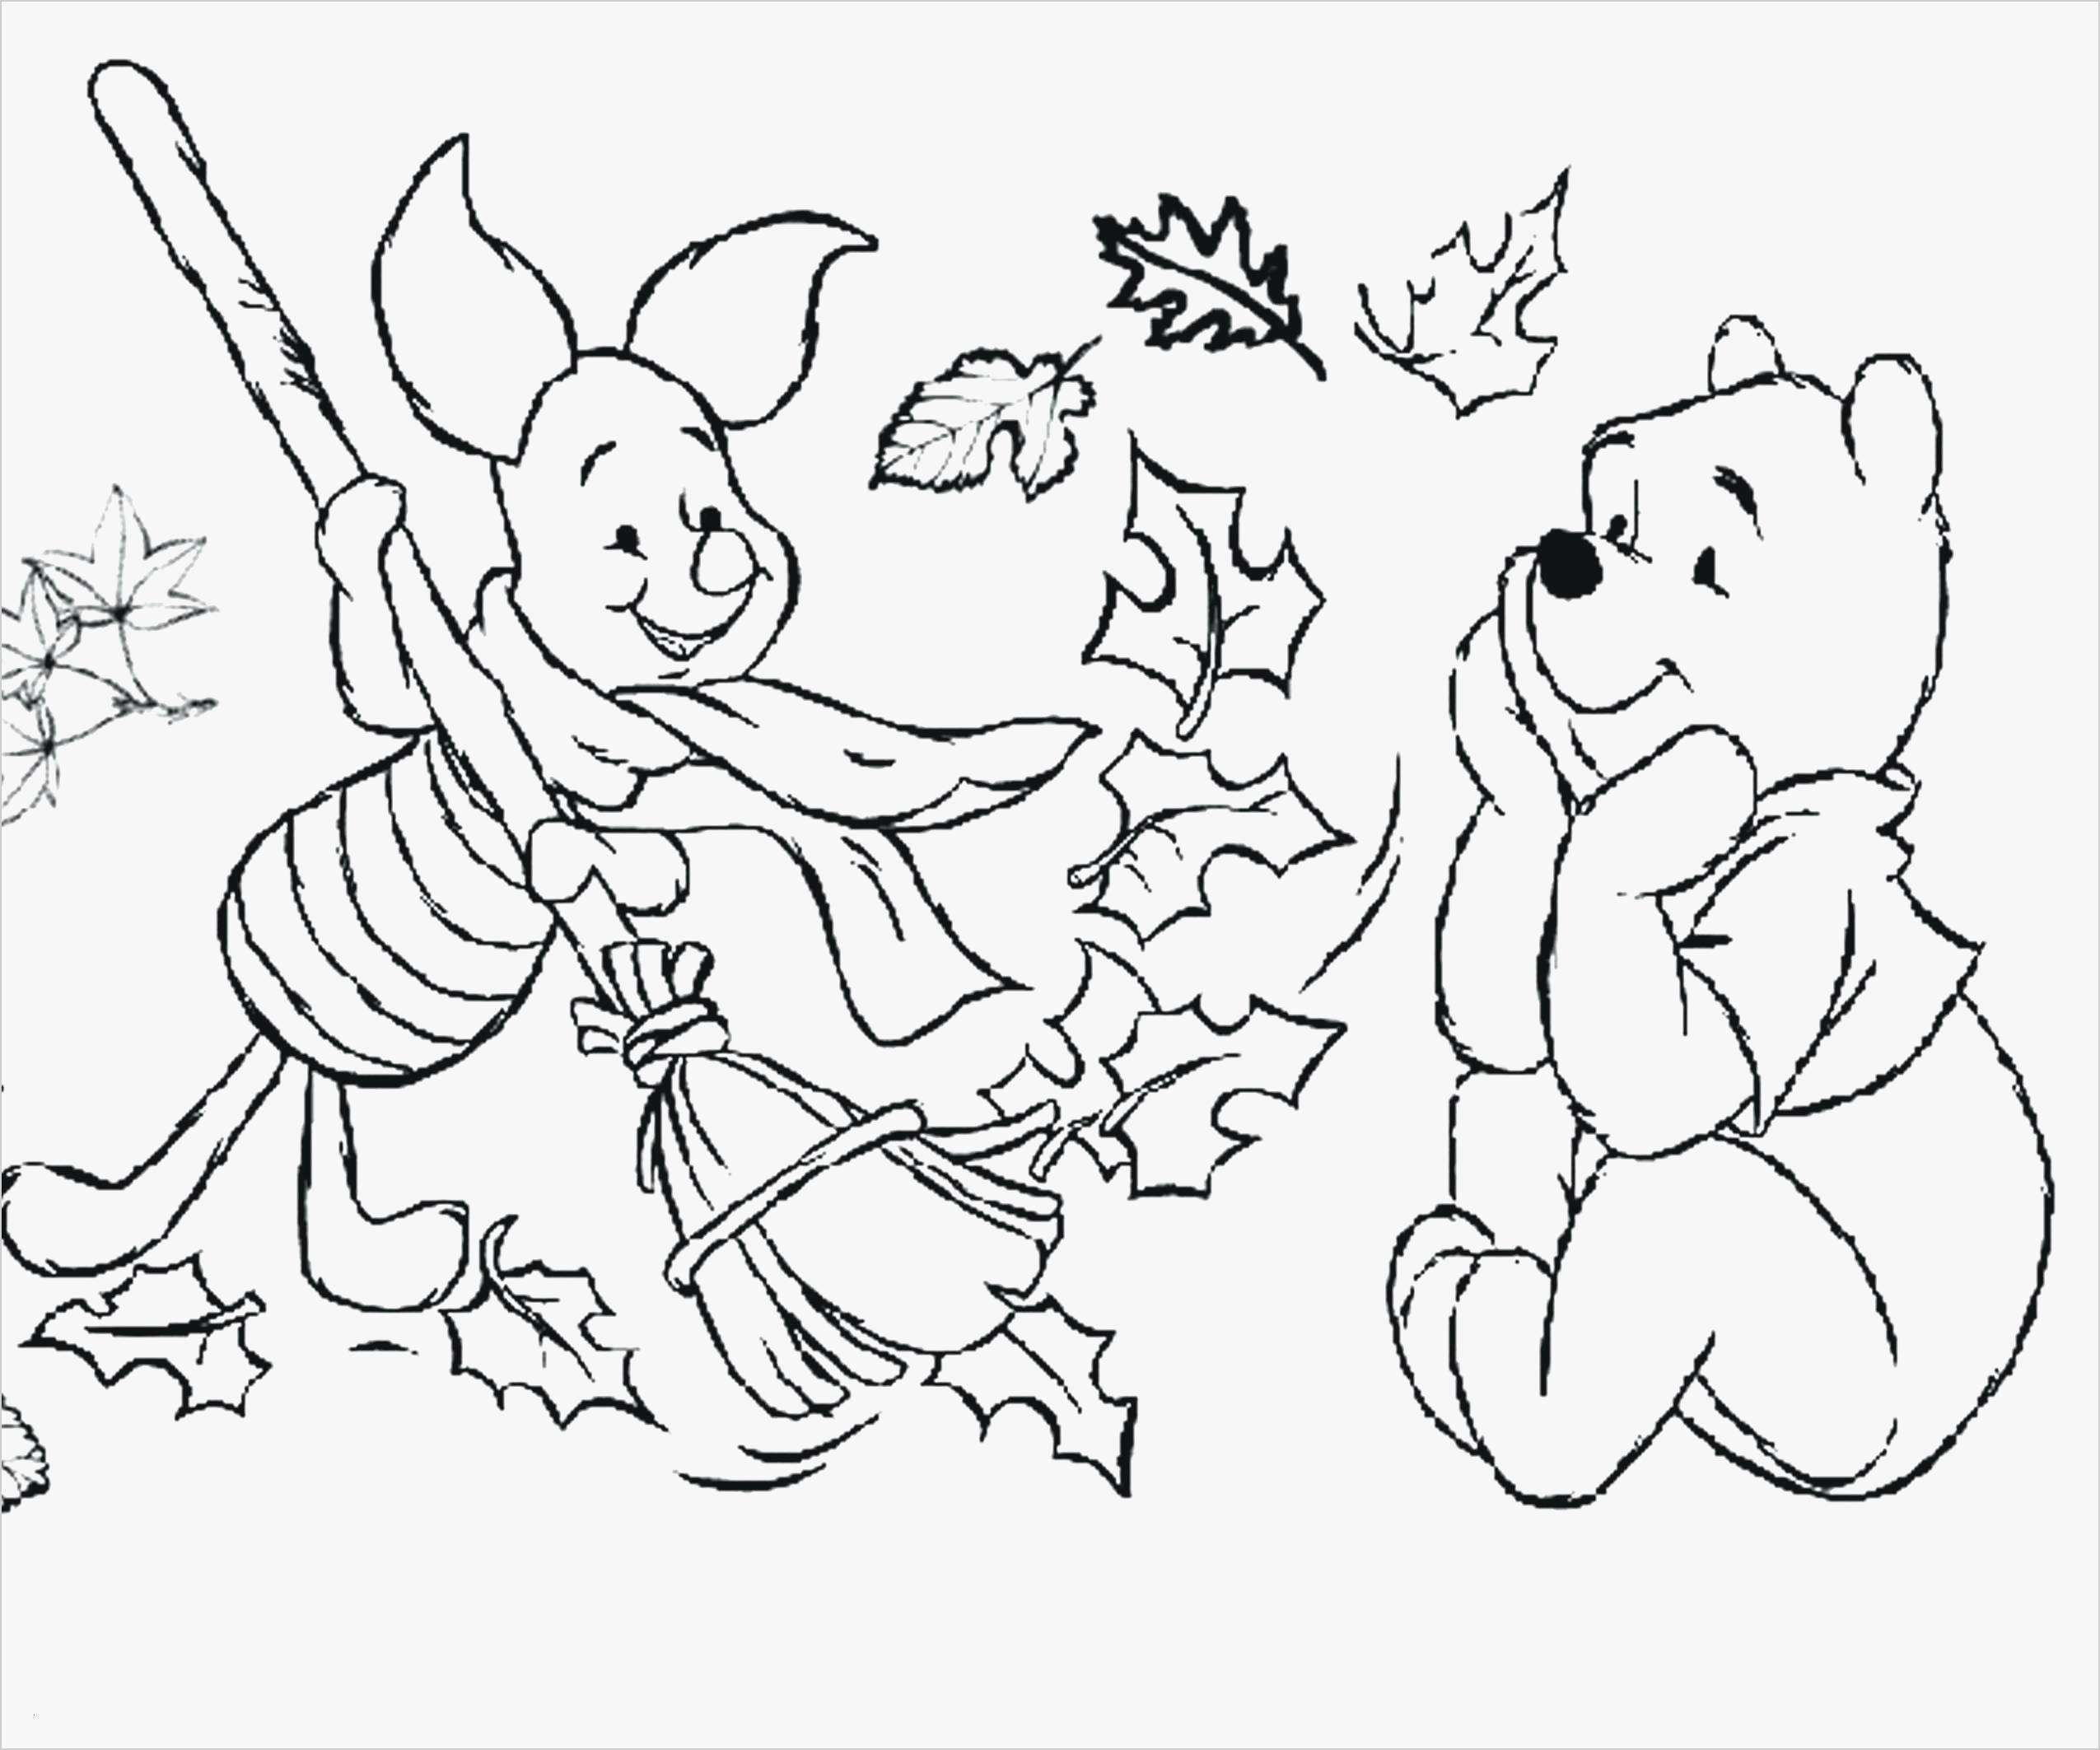 Lol Disney Coloring Pages Disney Lol Coloring Sheets Lol Disney Coloring Pages Lol Disney Unicorn Coloring Pages Disney Coloring Pages Animal Coloring Pages